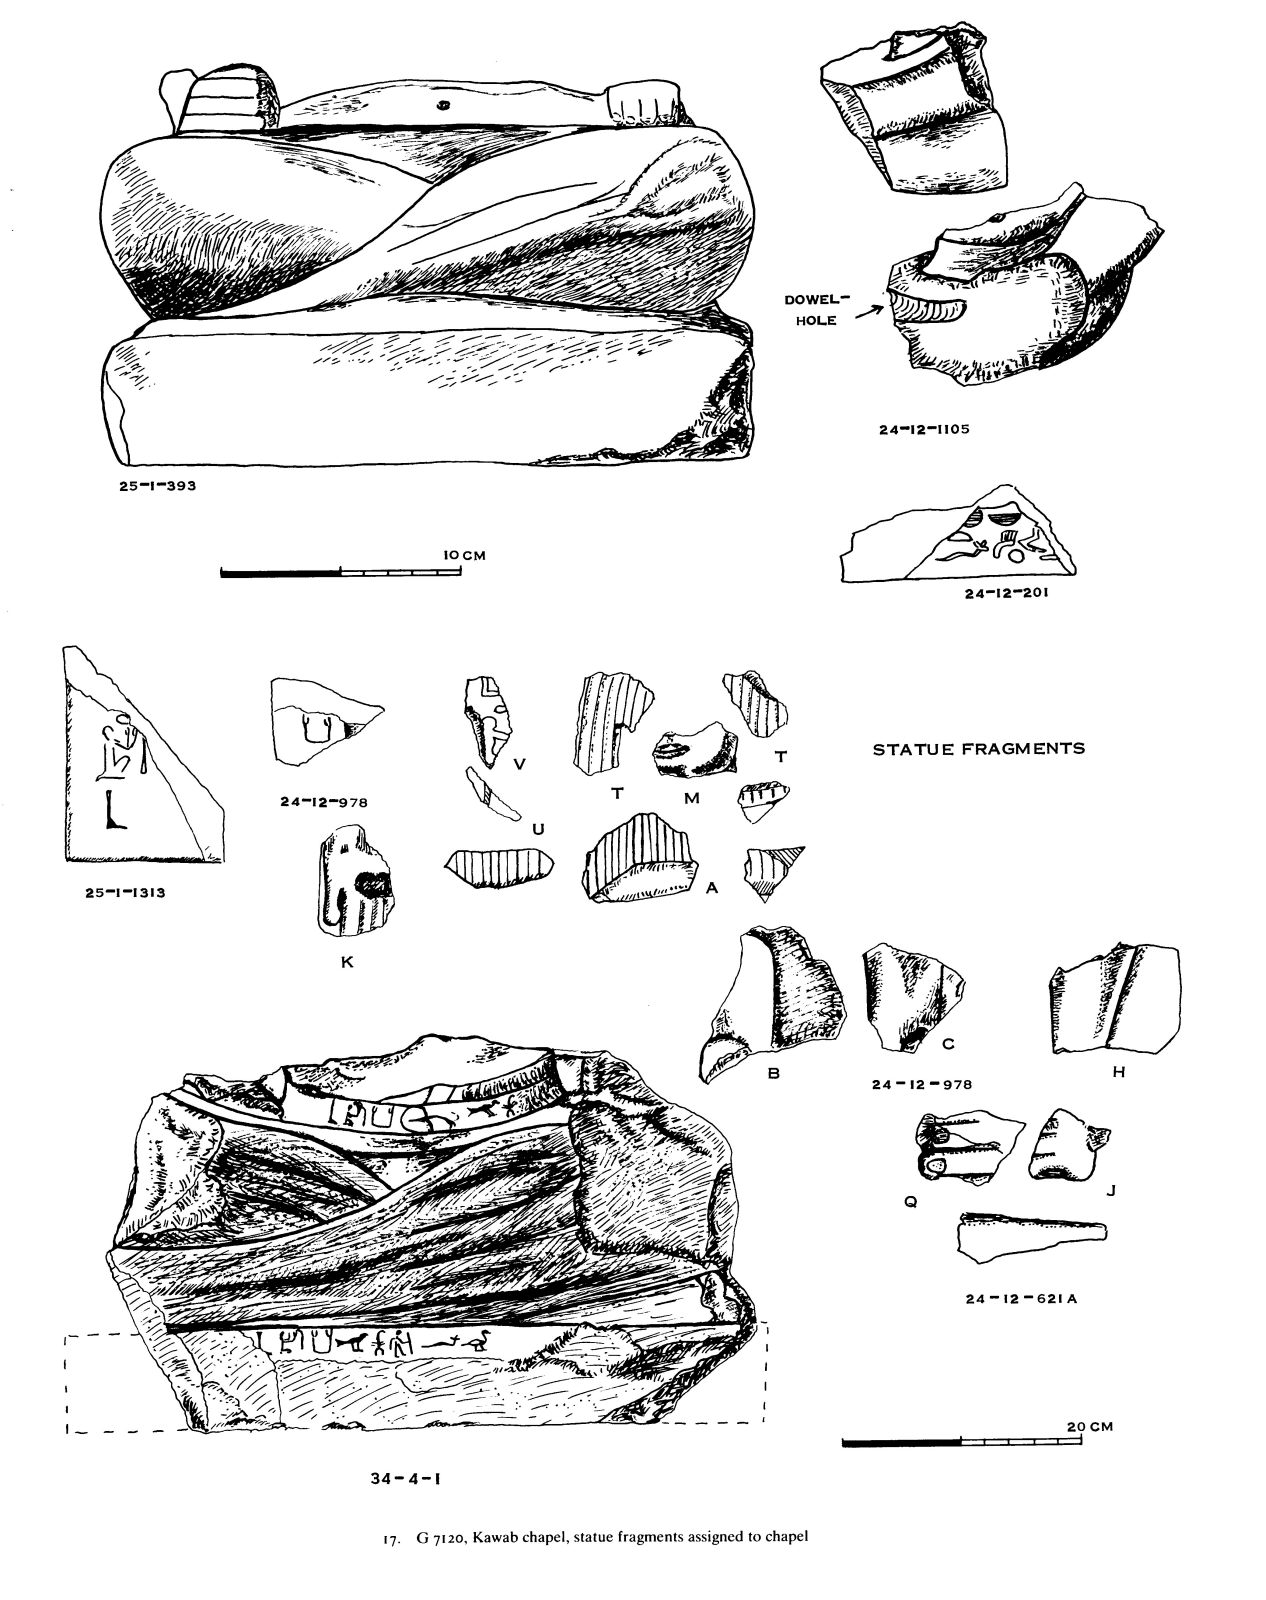 Drawings: G 7120: fragments of stone objects assigned to chapel